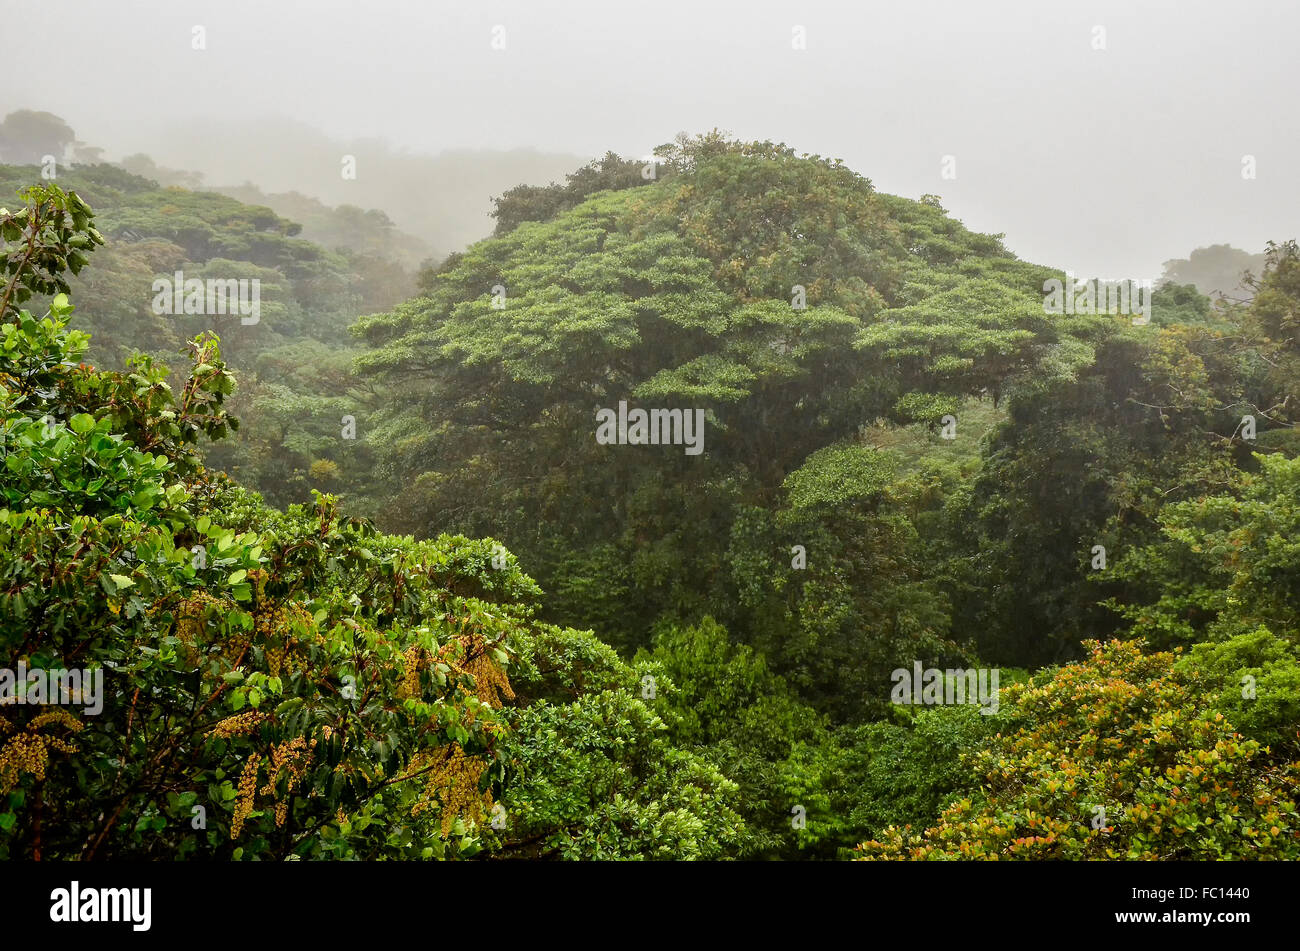 Rain forest - Stock Image